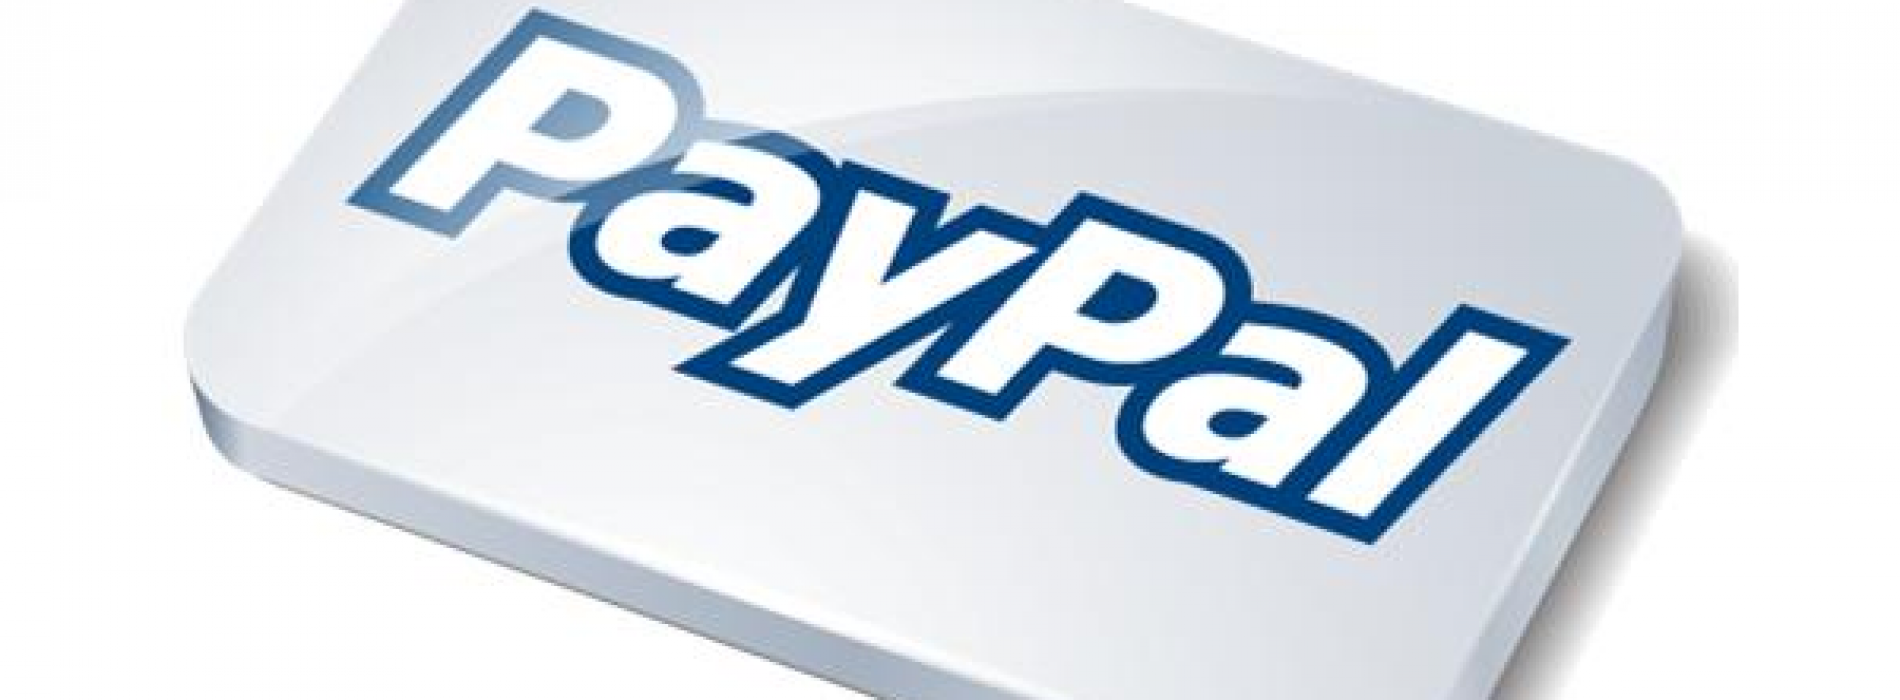 Paypal mobile wallet service adds another 15 retailers